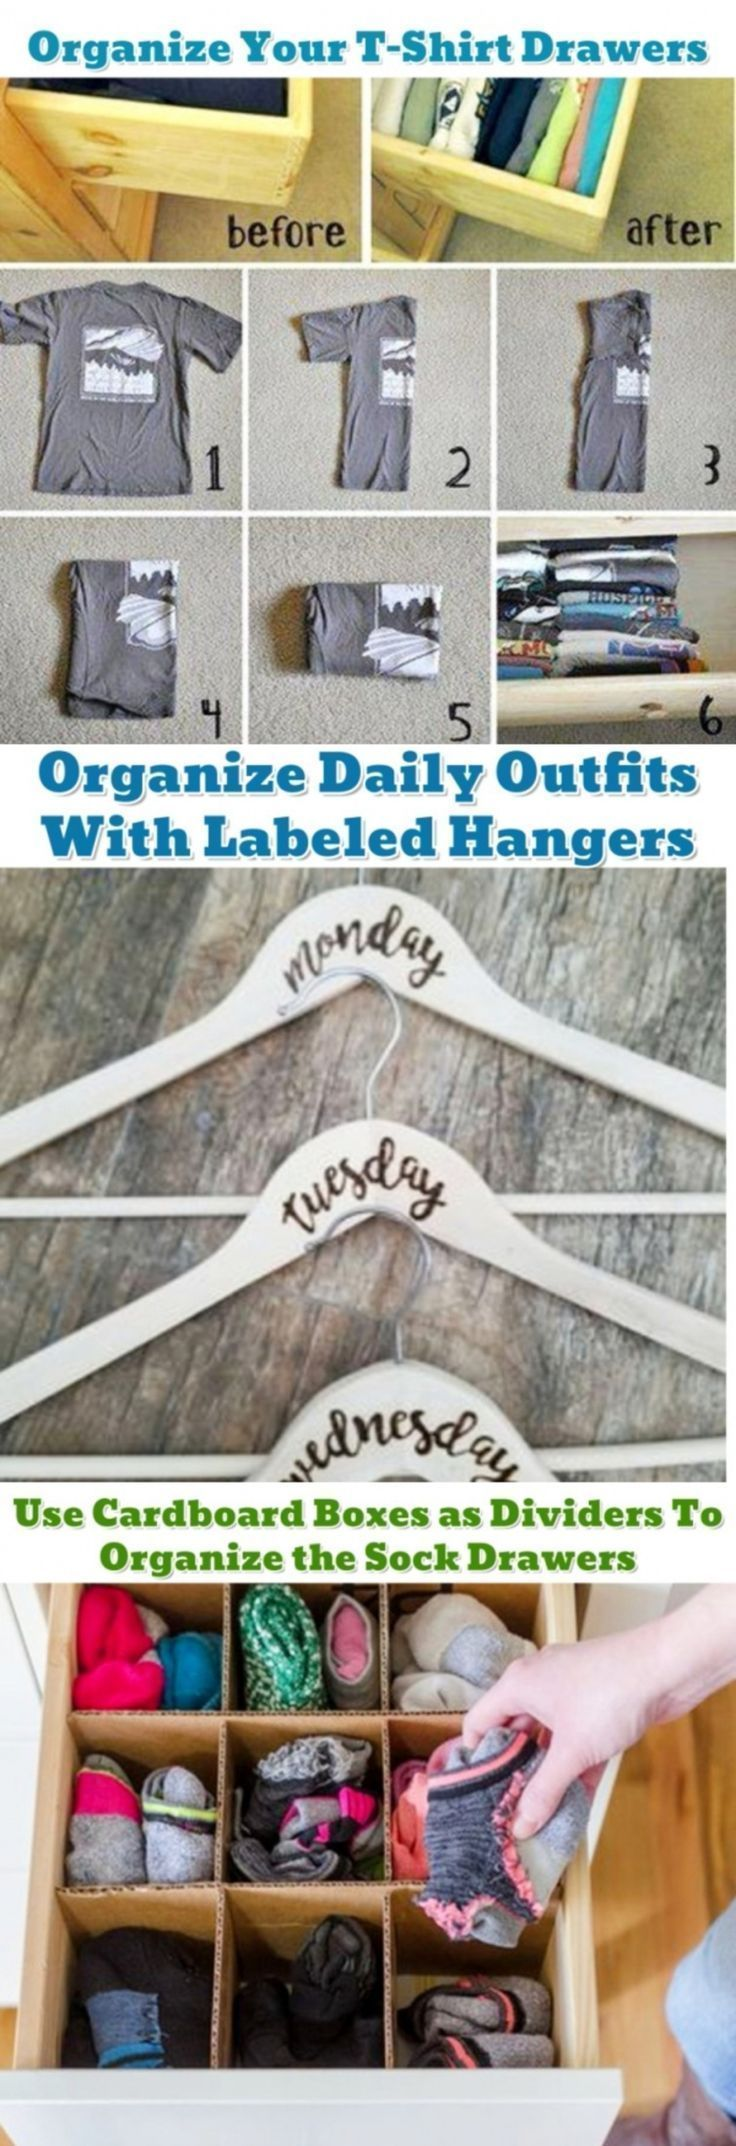 Getting organized and STAYING organized!  DIY organization hacks and ideas that work! Great dorm room organizing ideas too! #gettingorganized #organizationhacks #homeorganizationideas #diyorganizingideas #dormroomideas #bedroomideas